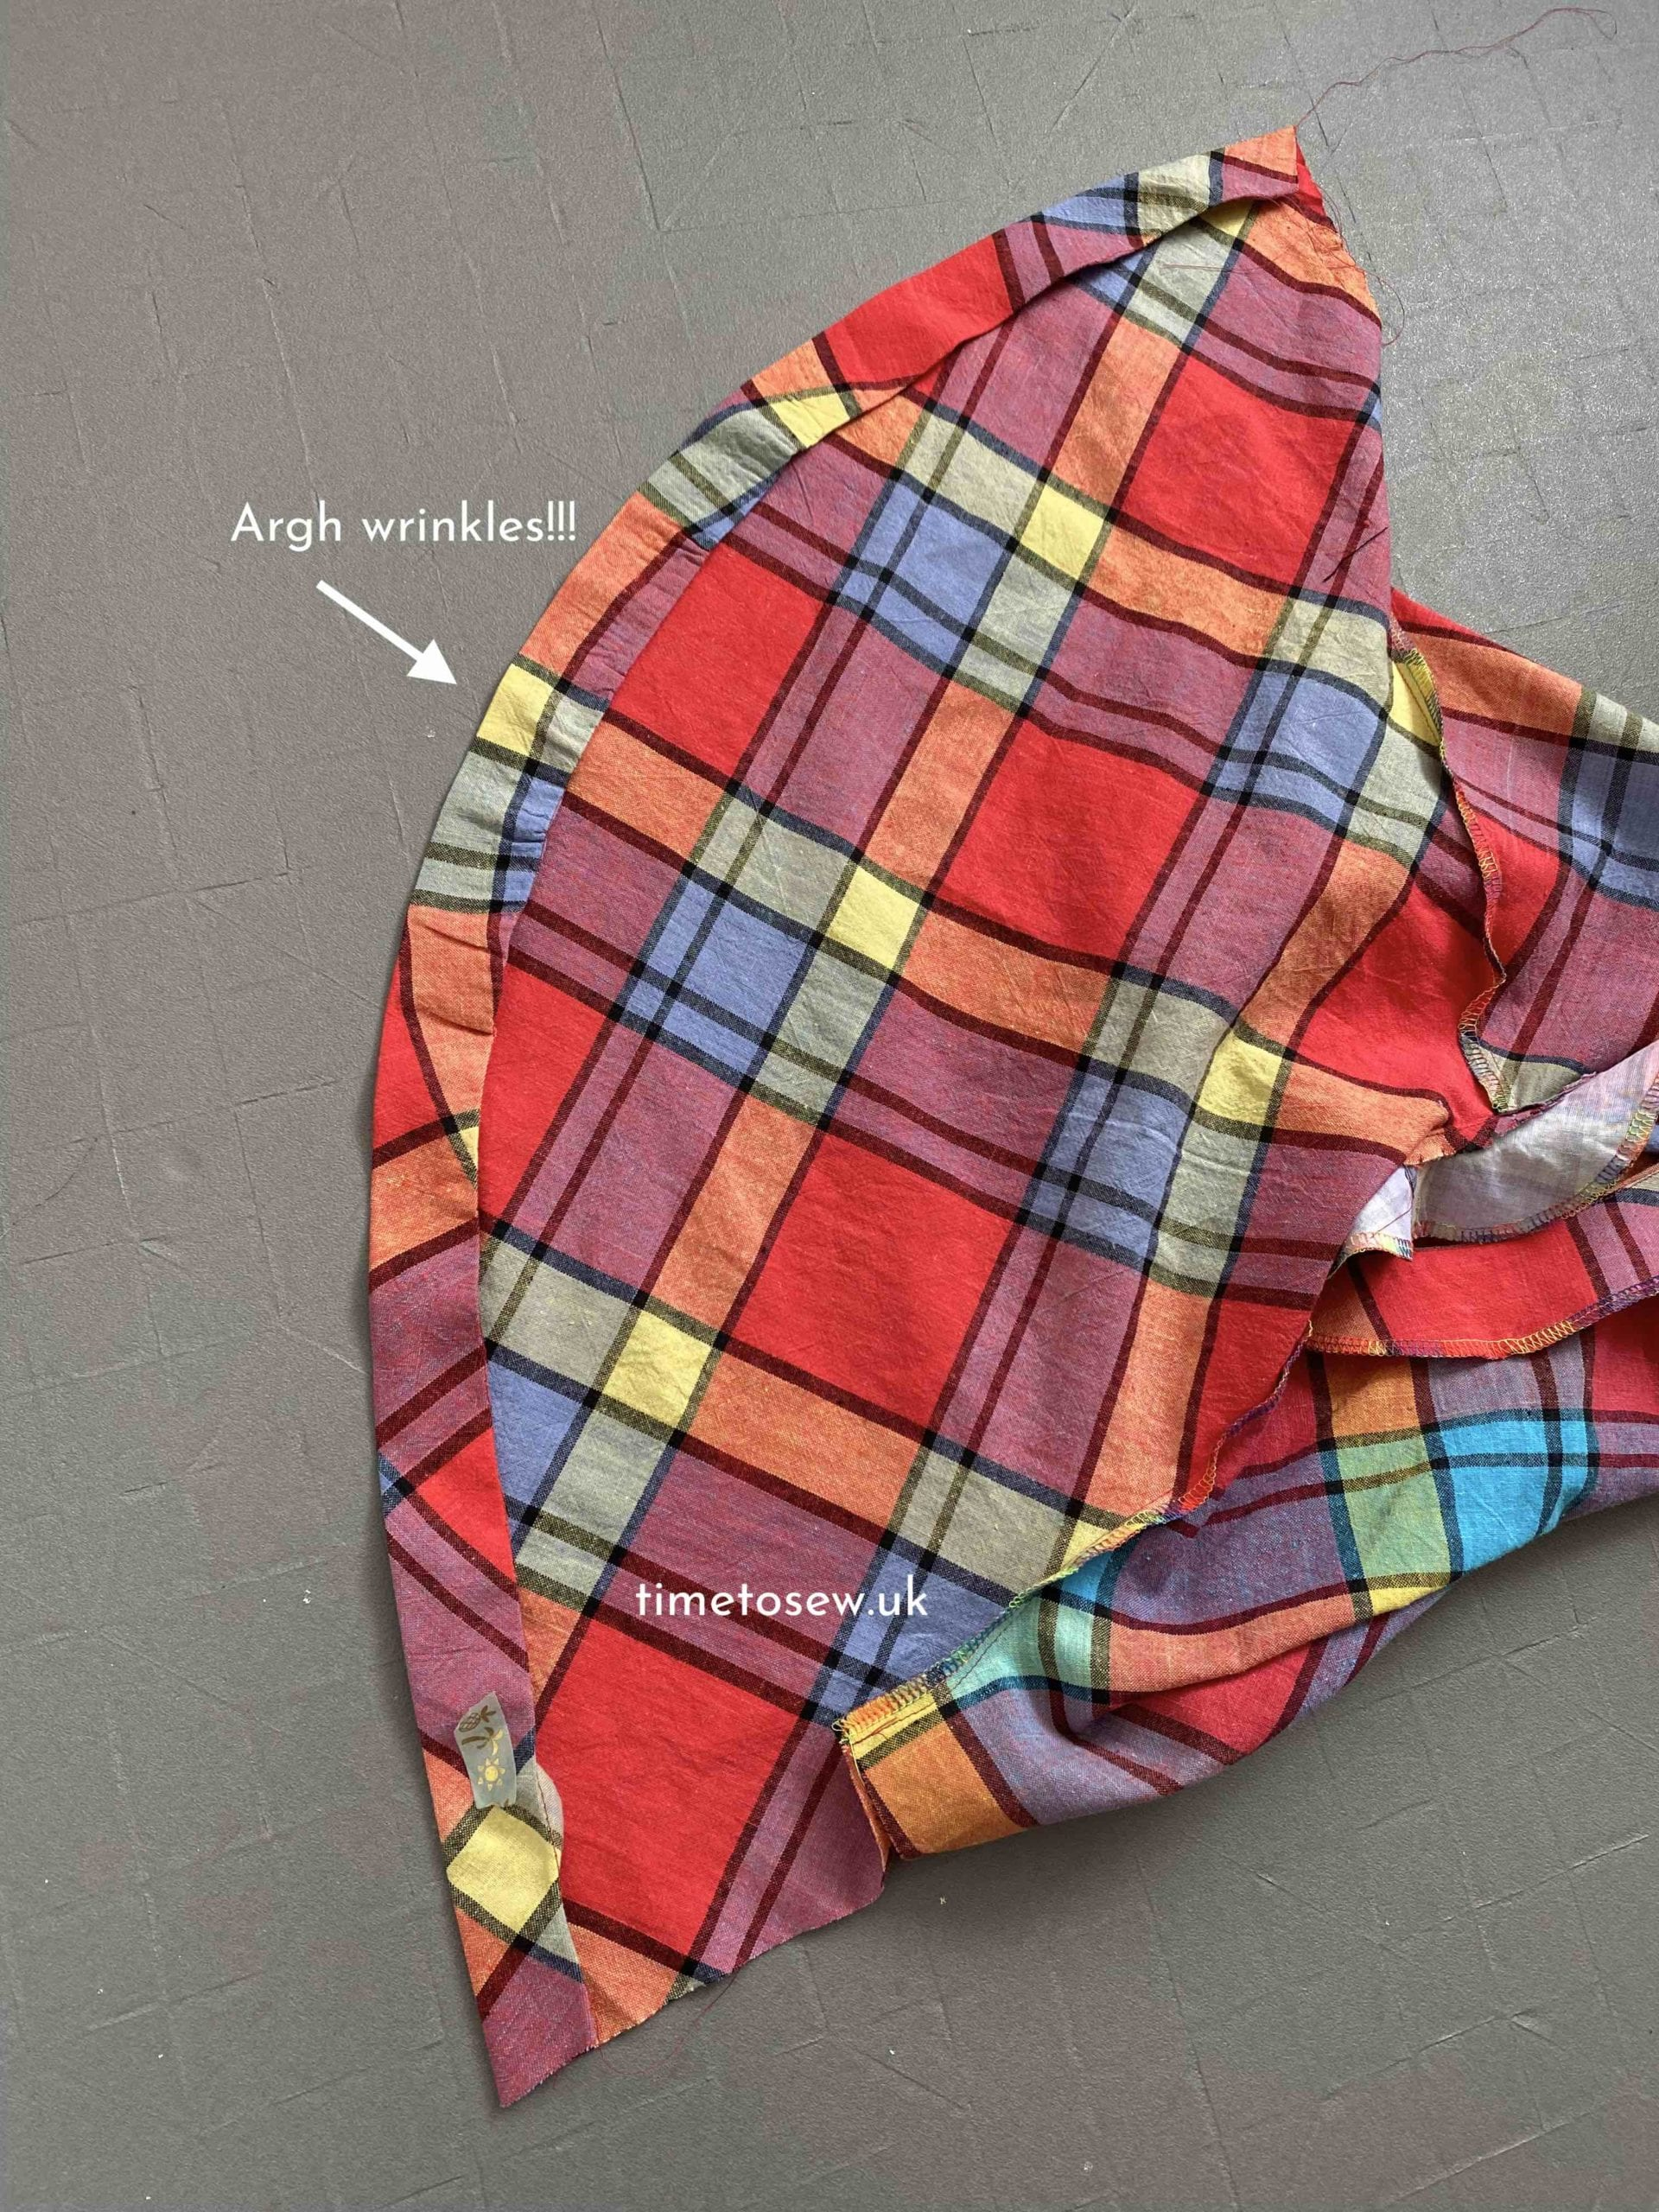 Sleeve piece from the Peppermint Paddington top in a checkered fabric